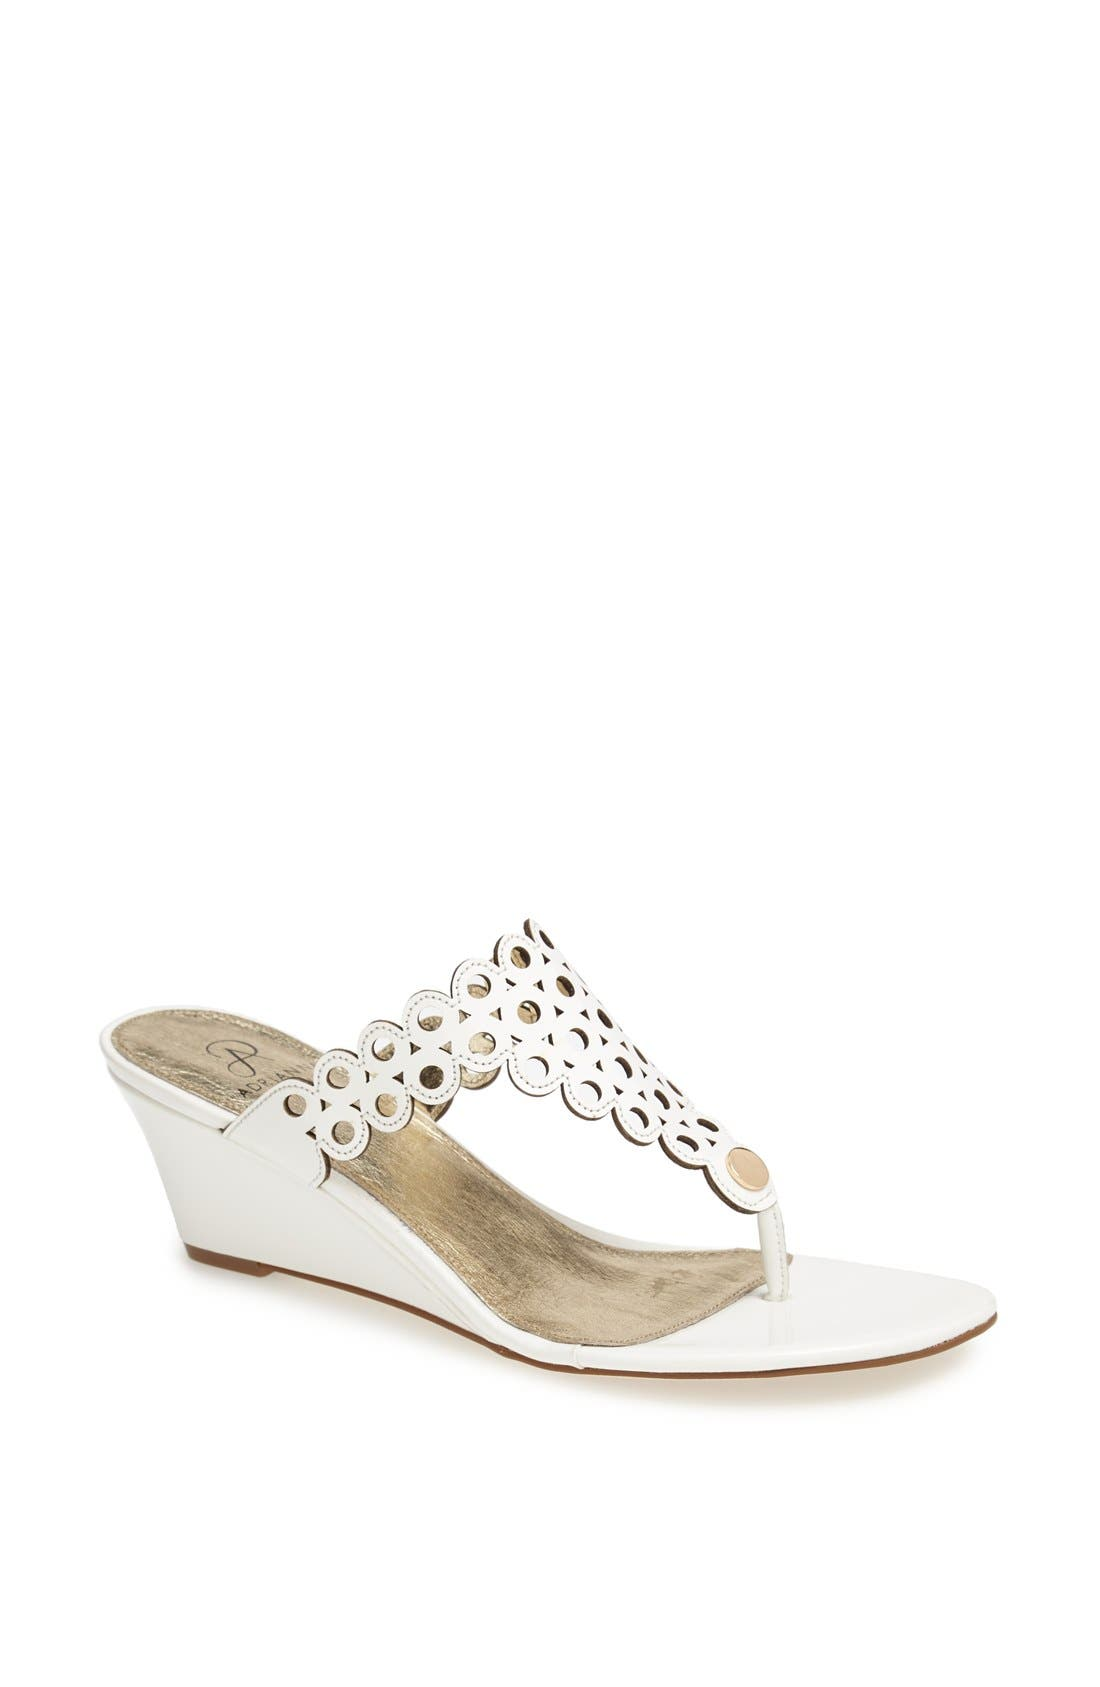 Main Image - Adrianna Papell 'Calais' Wedge Sandal